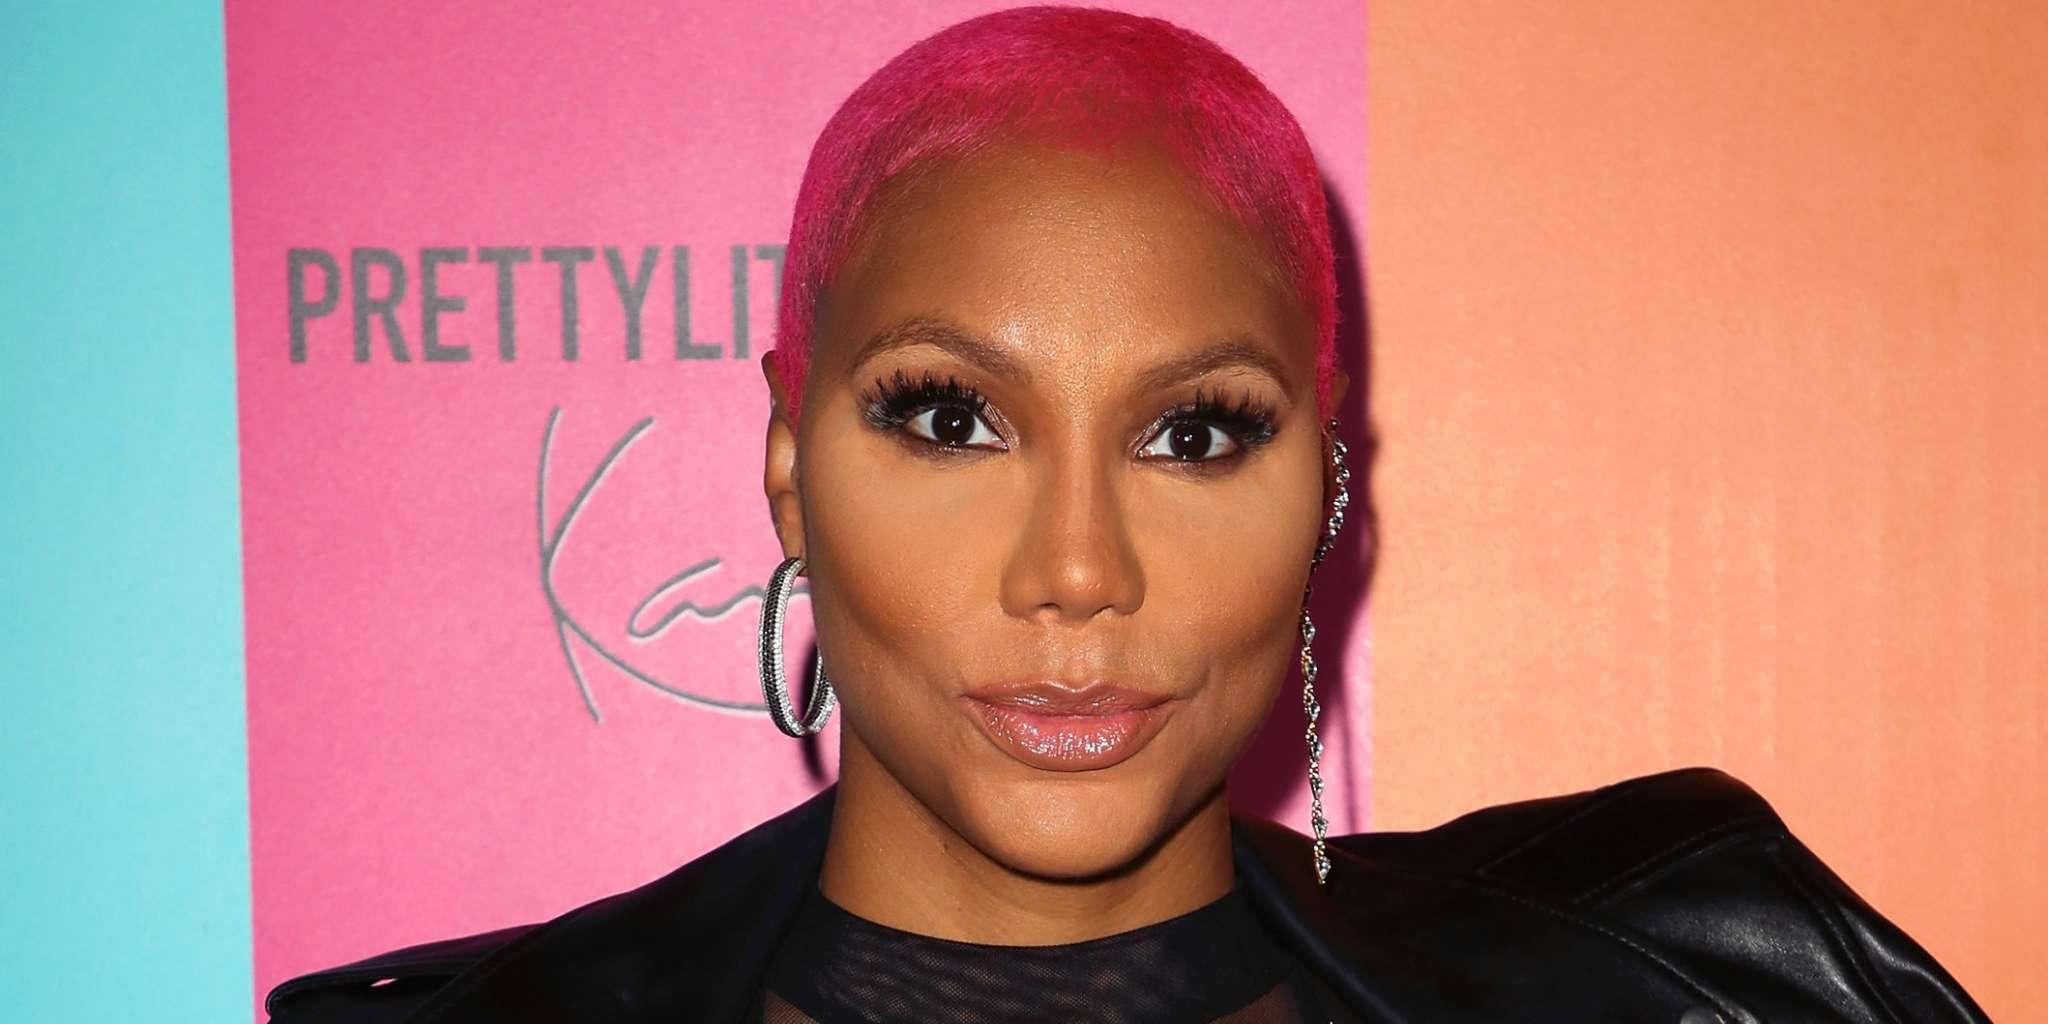 Some Of Tamar Braxton's Fans Seem To Have A Problem With Her Advertising Fashion Nova Clothing